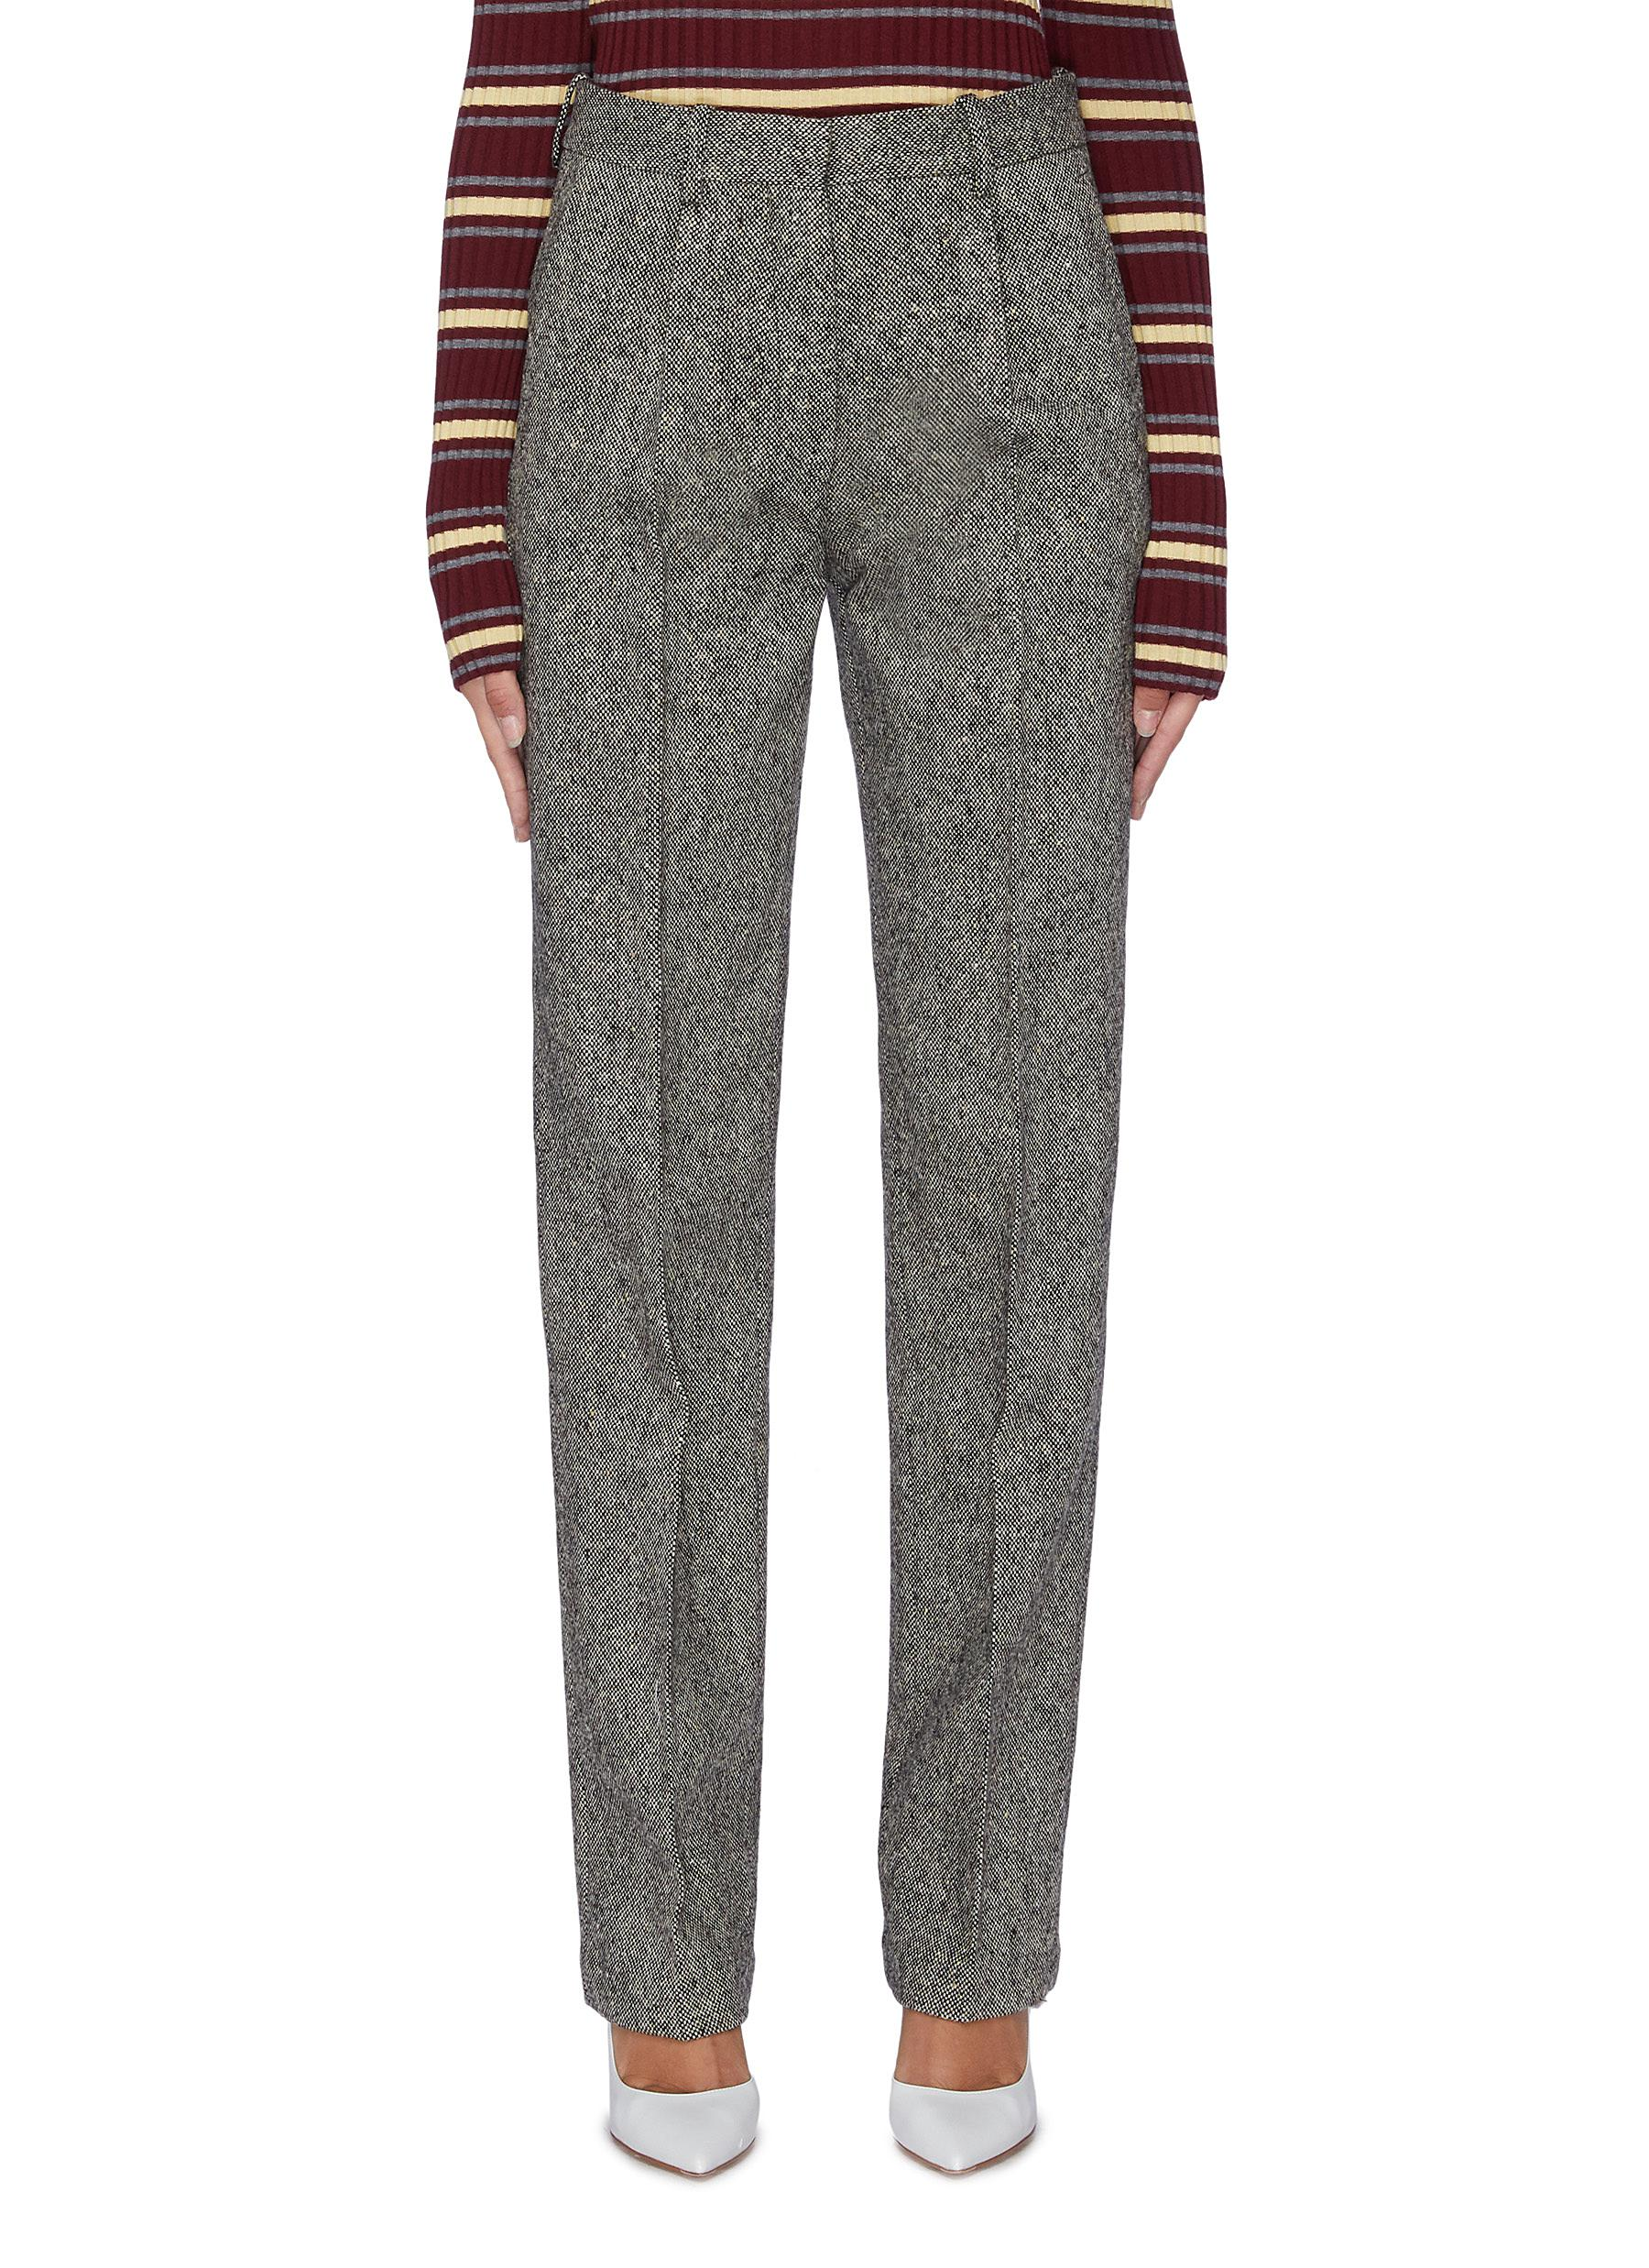 Tweed suiting pants by Victoria Beckham